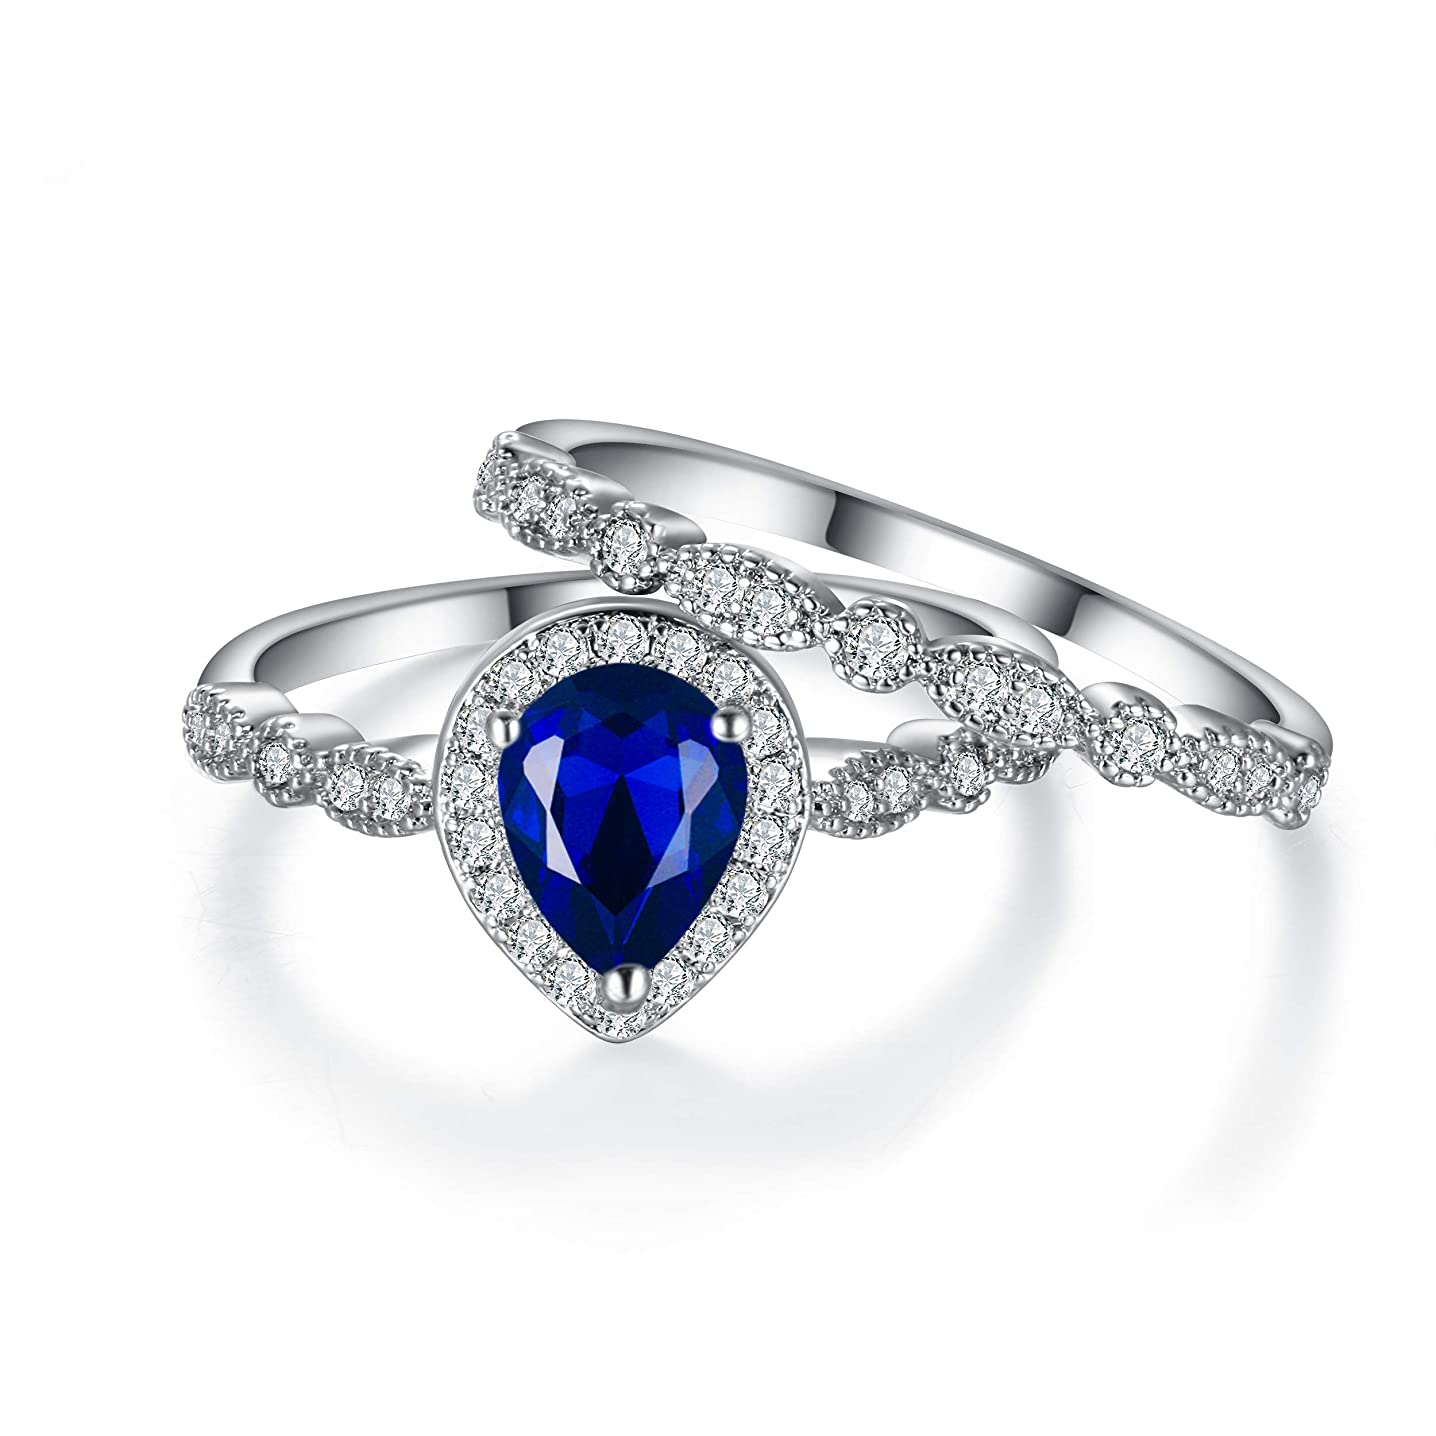 EVER FAITH Prong Cubic Zirconia Elegant Bridal Engagement Blue Pear Shaped Teardrop Wedding Ring Set